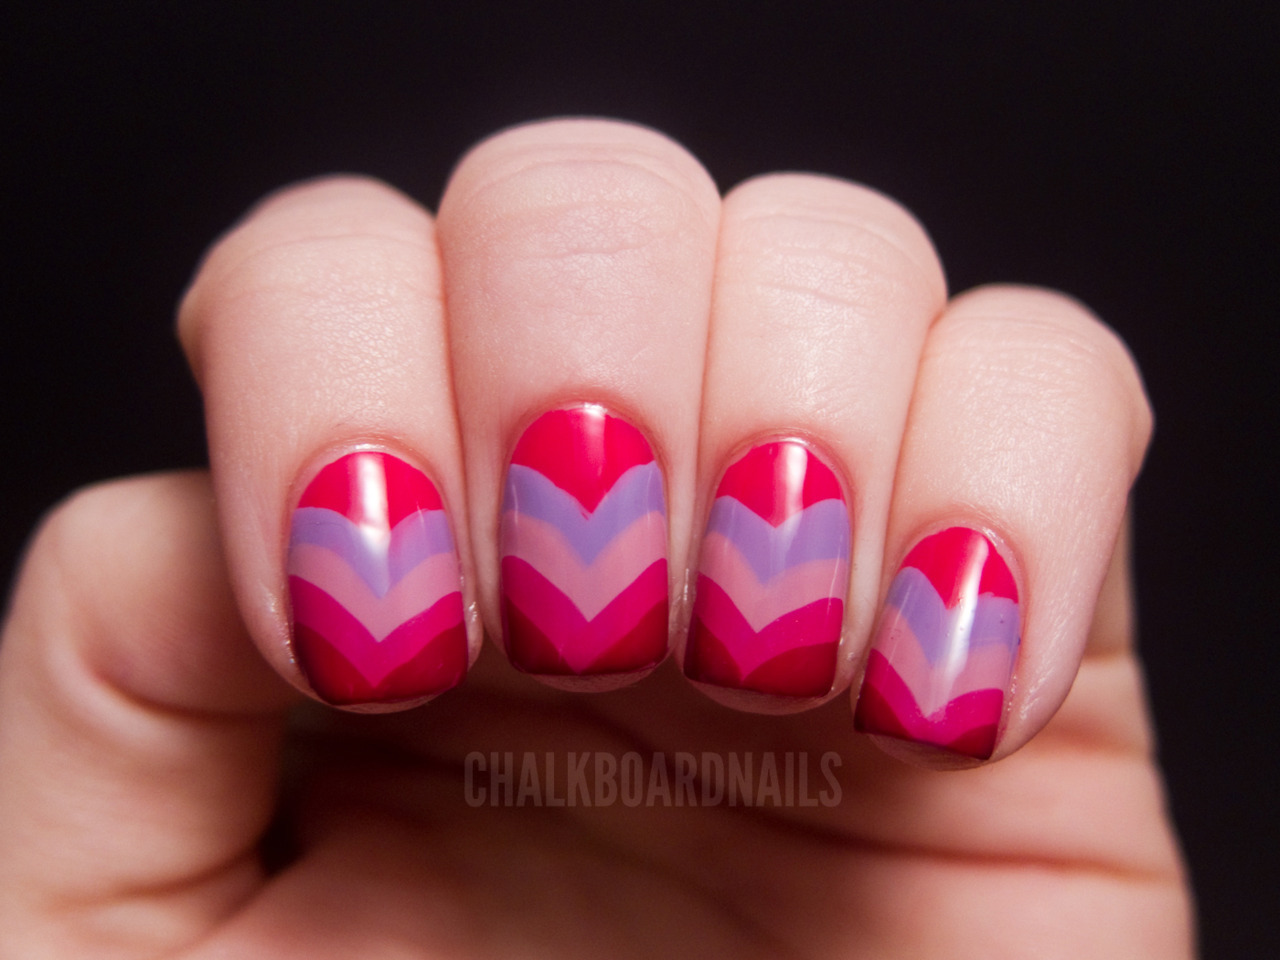 chalkboardnails:  Heart Fishtails China Glaze Wicked StyleOPI Do You Lilac It?OPI Sparrow Me the DramaSally Hansen Twisted PinkOPI Manicurist of Seville